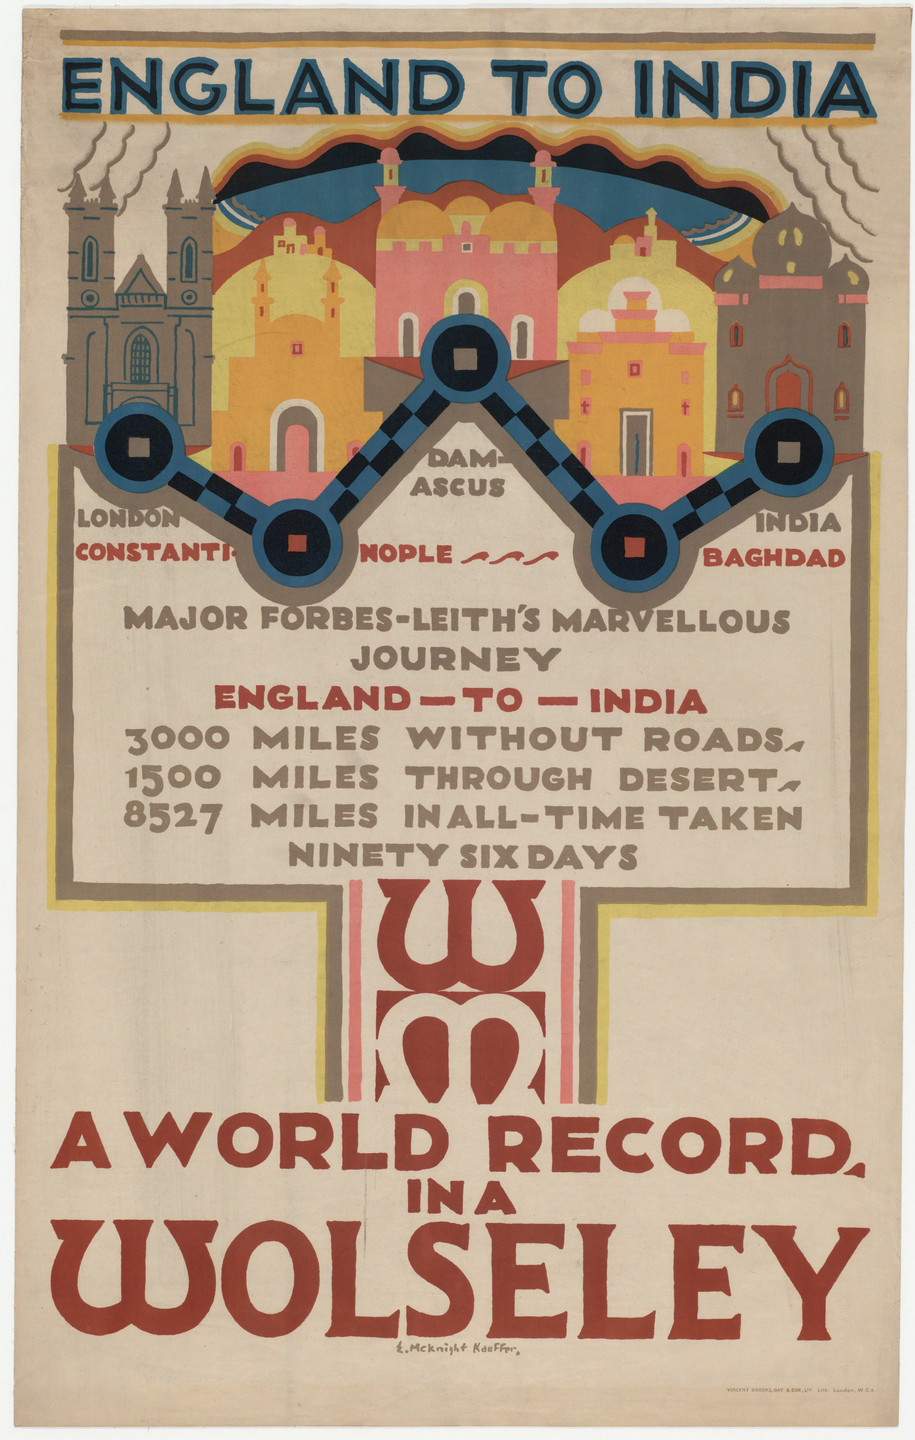 E. McKnight Kauffer. England to India, A World Record in a Wolseley. 1925